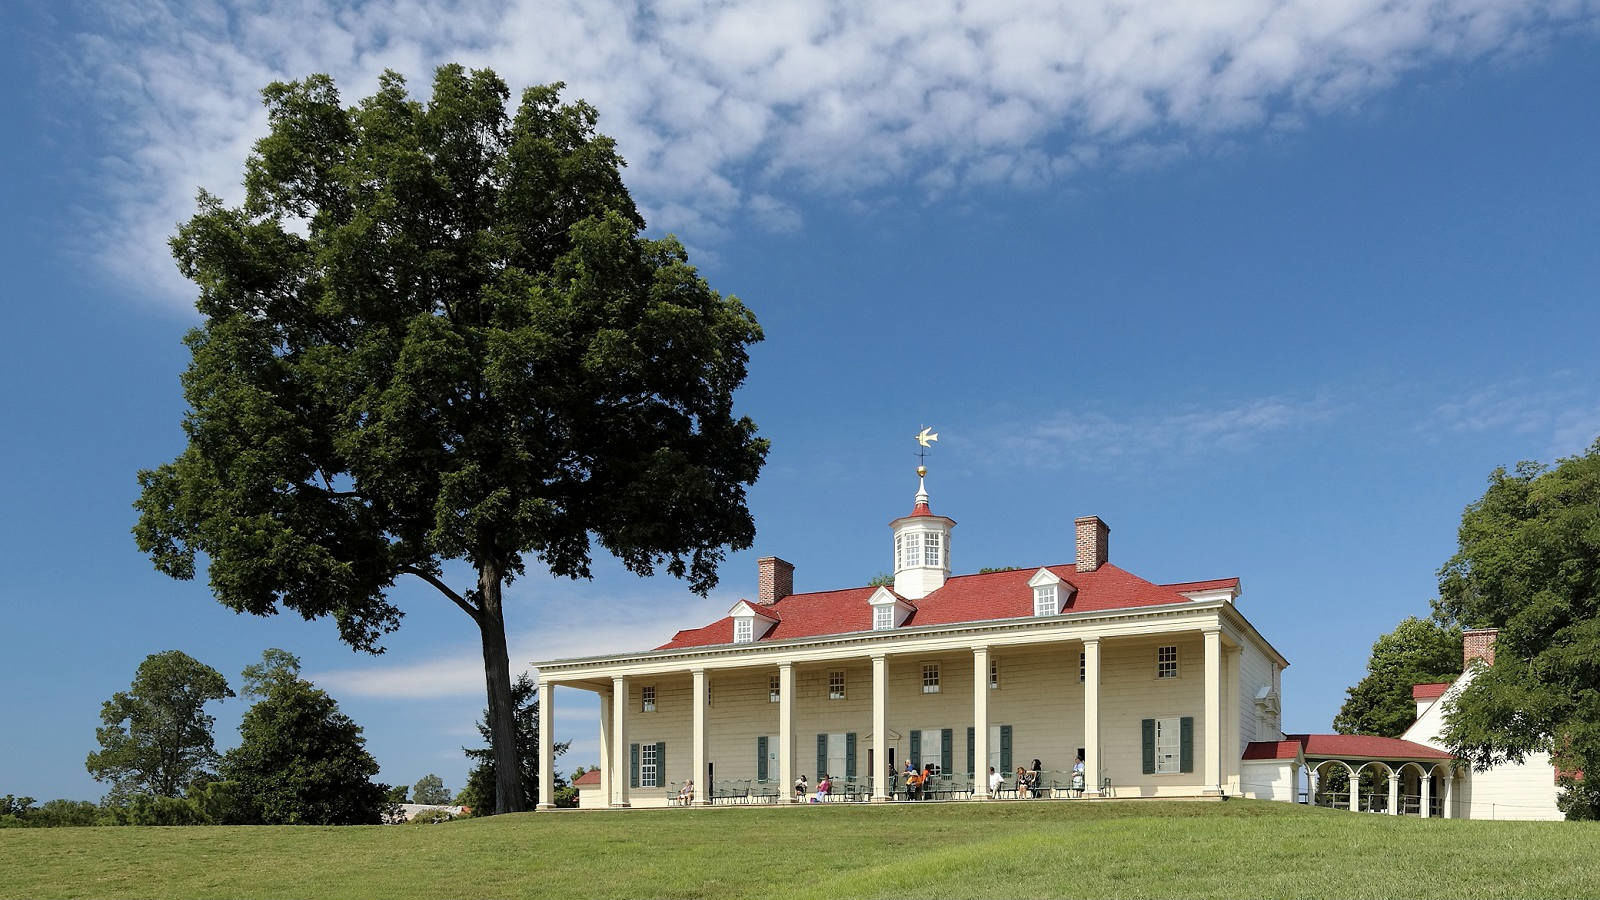 Visiting Mount Vernon Estate is the perfect family outing.